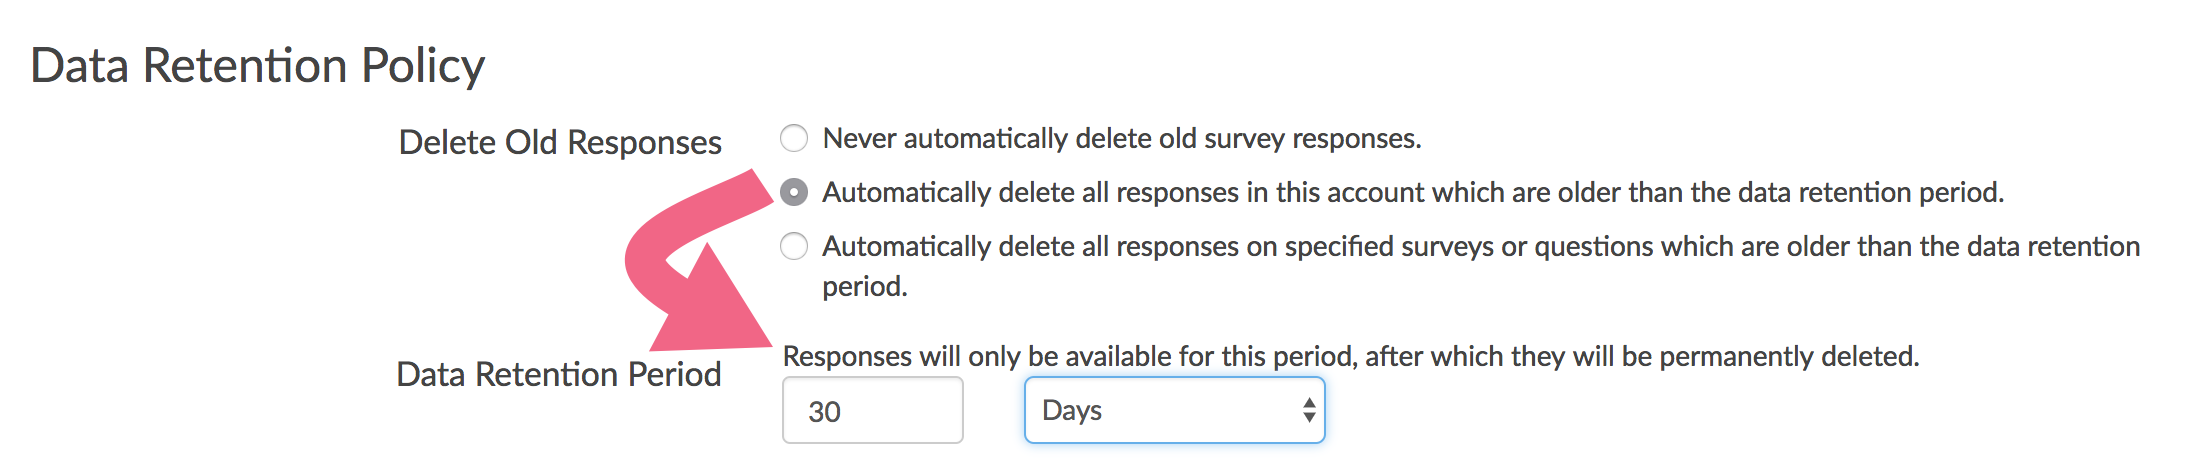 DRP Setting: Automatically delete responses older than the data retention period